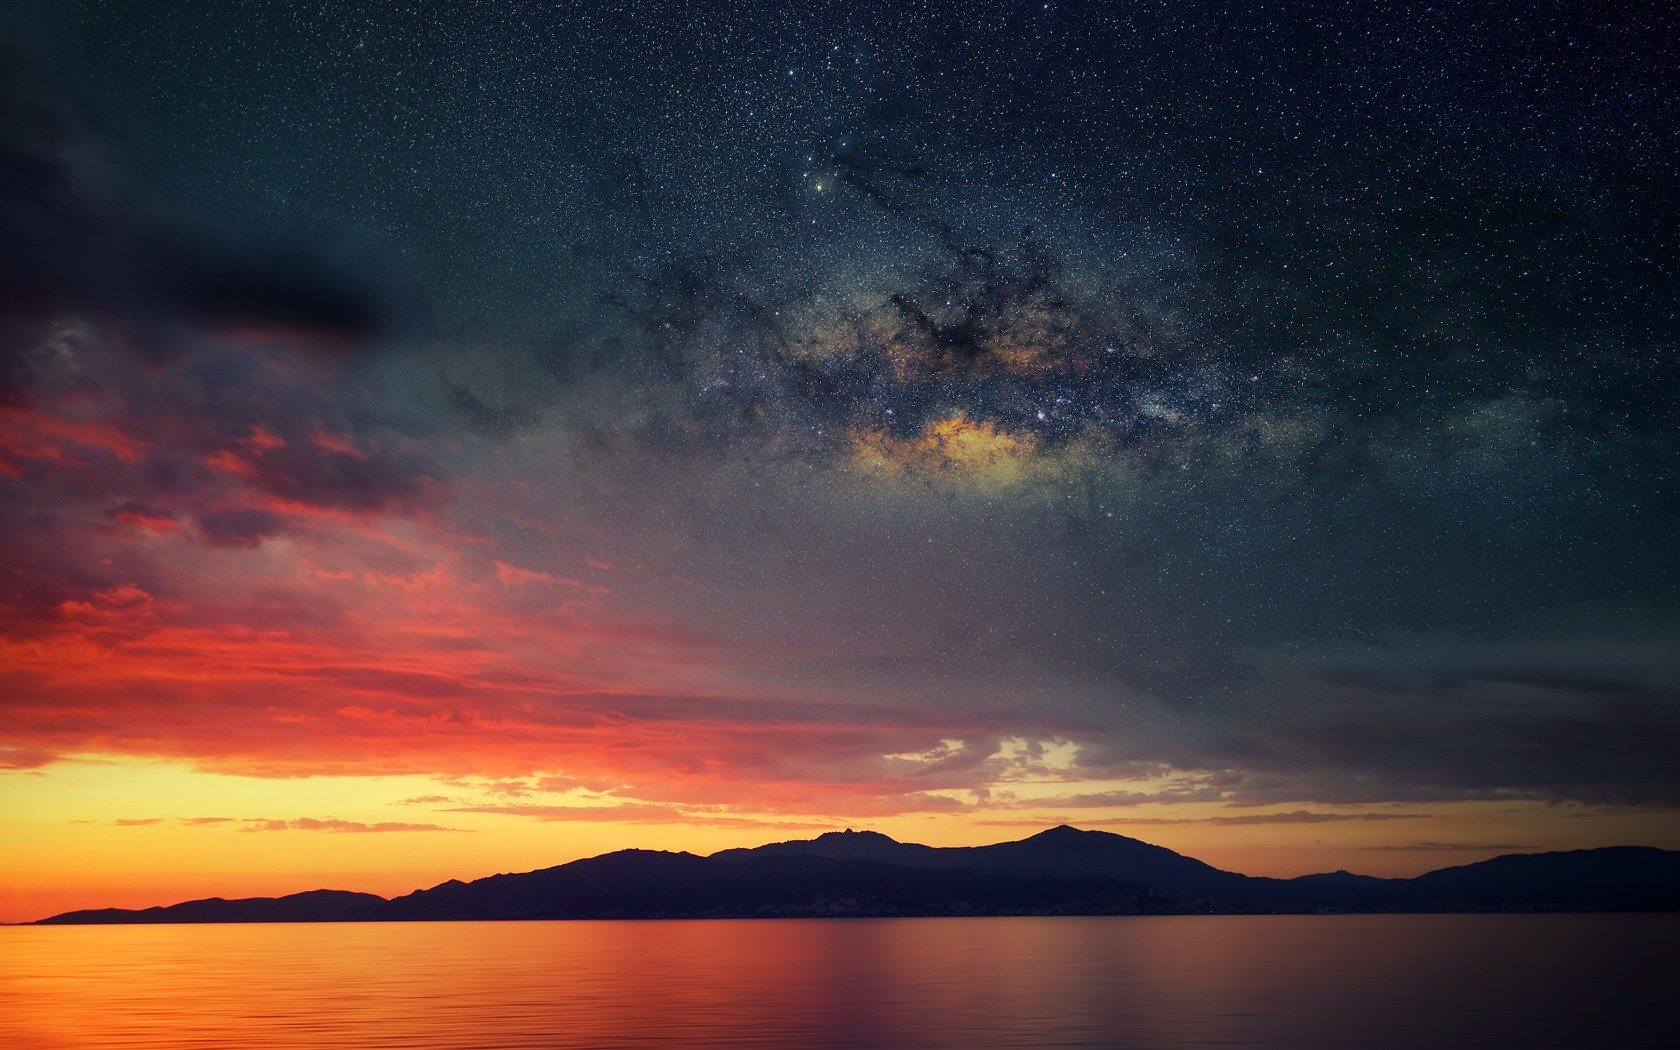 Wallpaper Corsica France Mountains Sea Starry Sky Clouds Sunset 3840x2160 Uhd 4k Picture Image